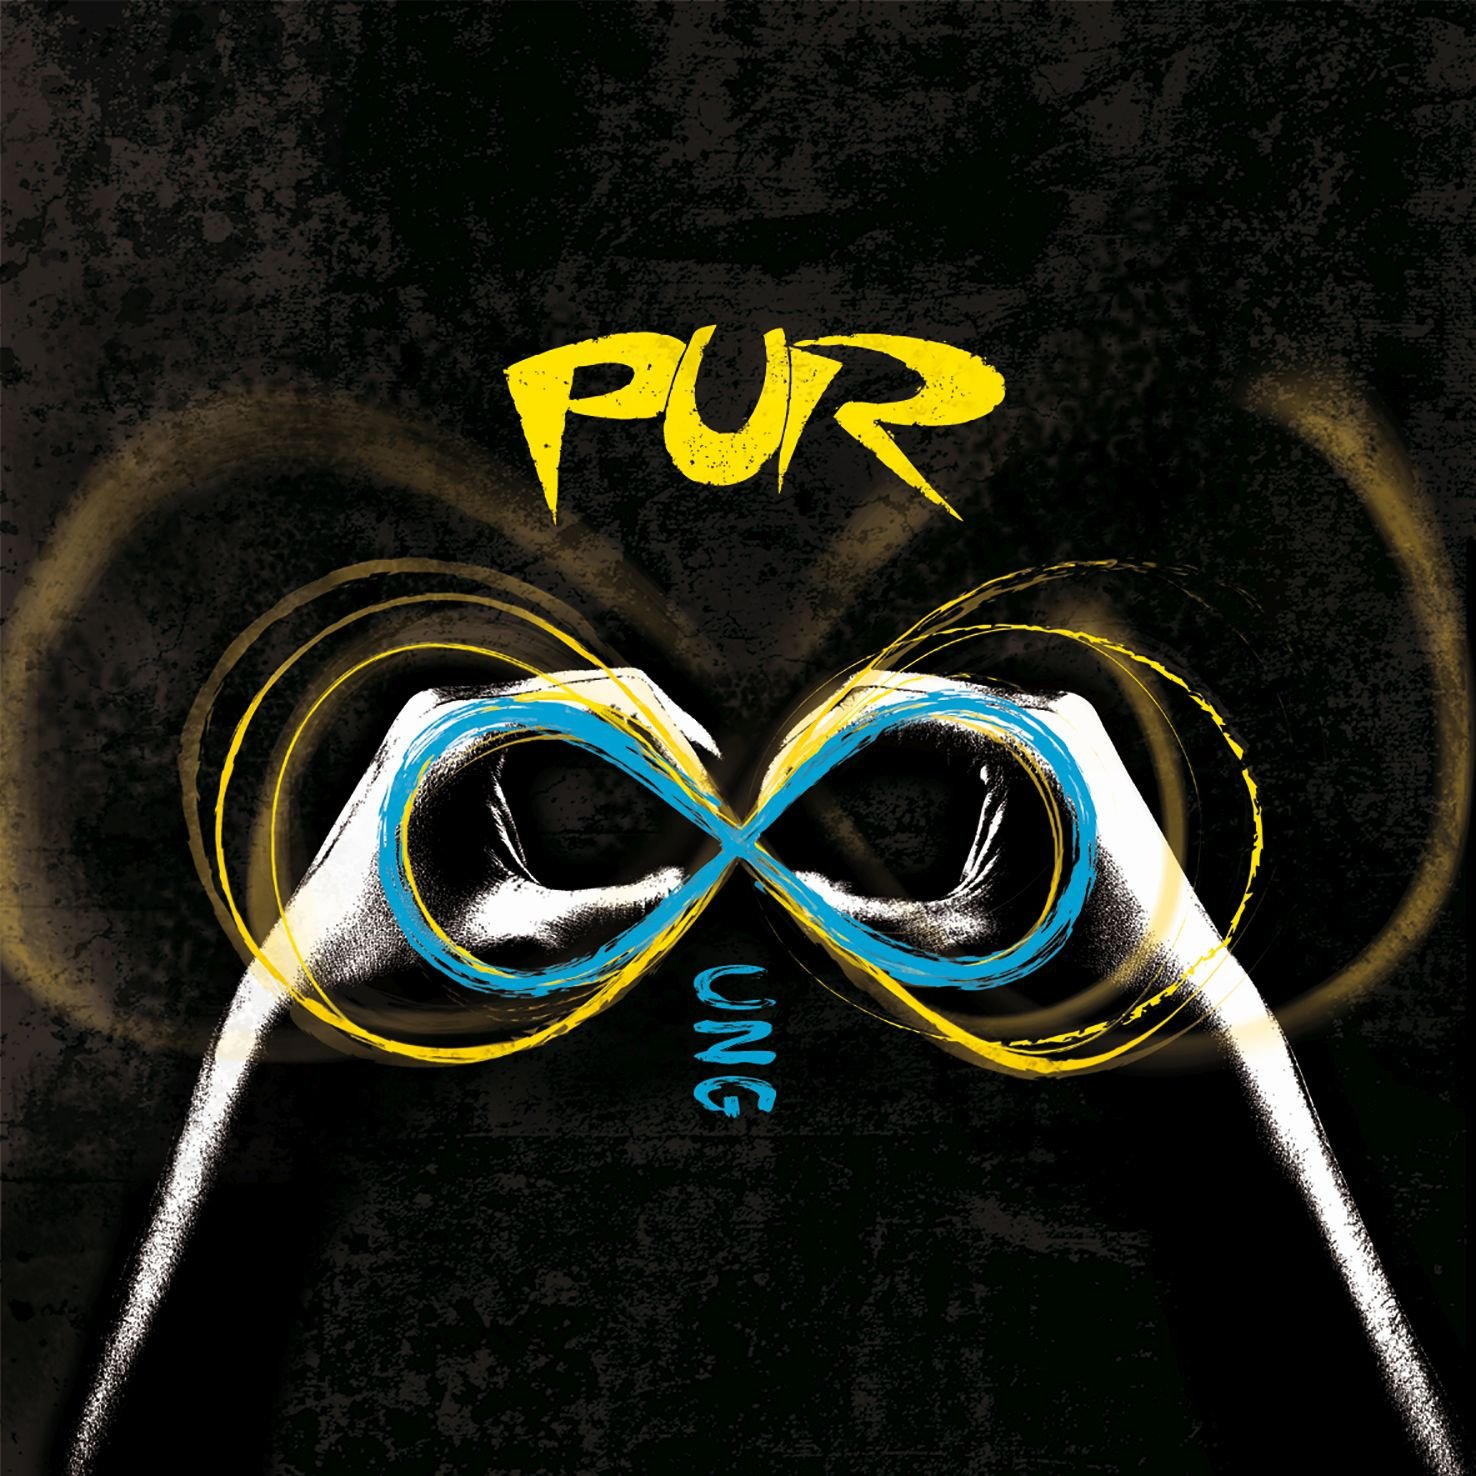 Pur-Achtung-DE-Deluxe Edition-CD-FLAC-2015-VOLDiES Download